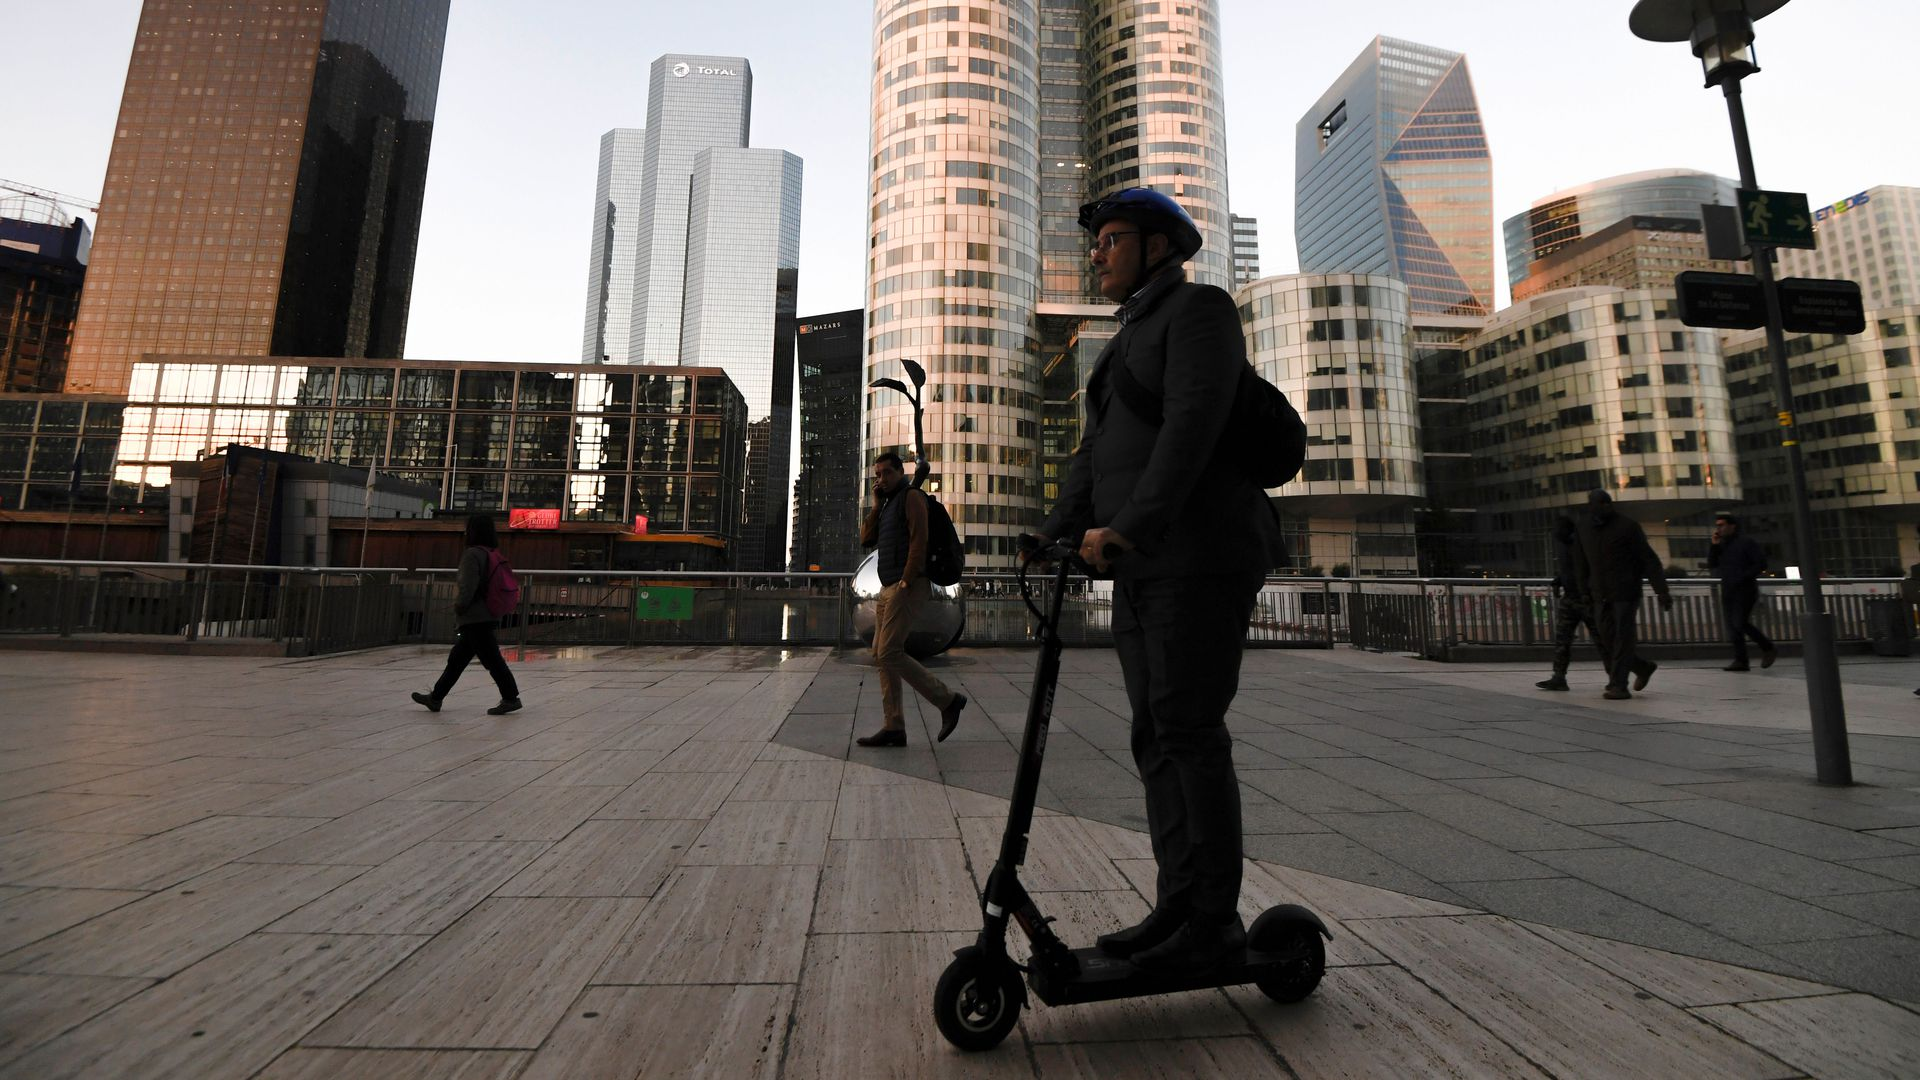 In this image, a person rides an electric scooter through a mostly empty city quad. Skyscrapers are in the background.